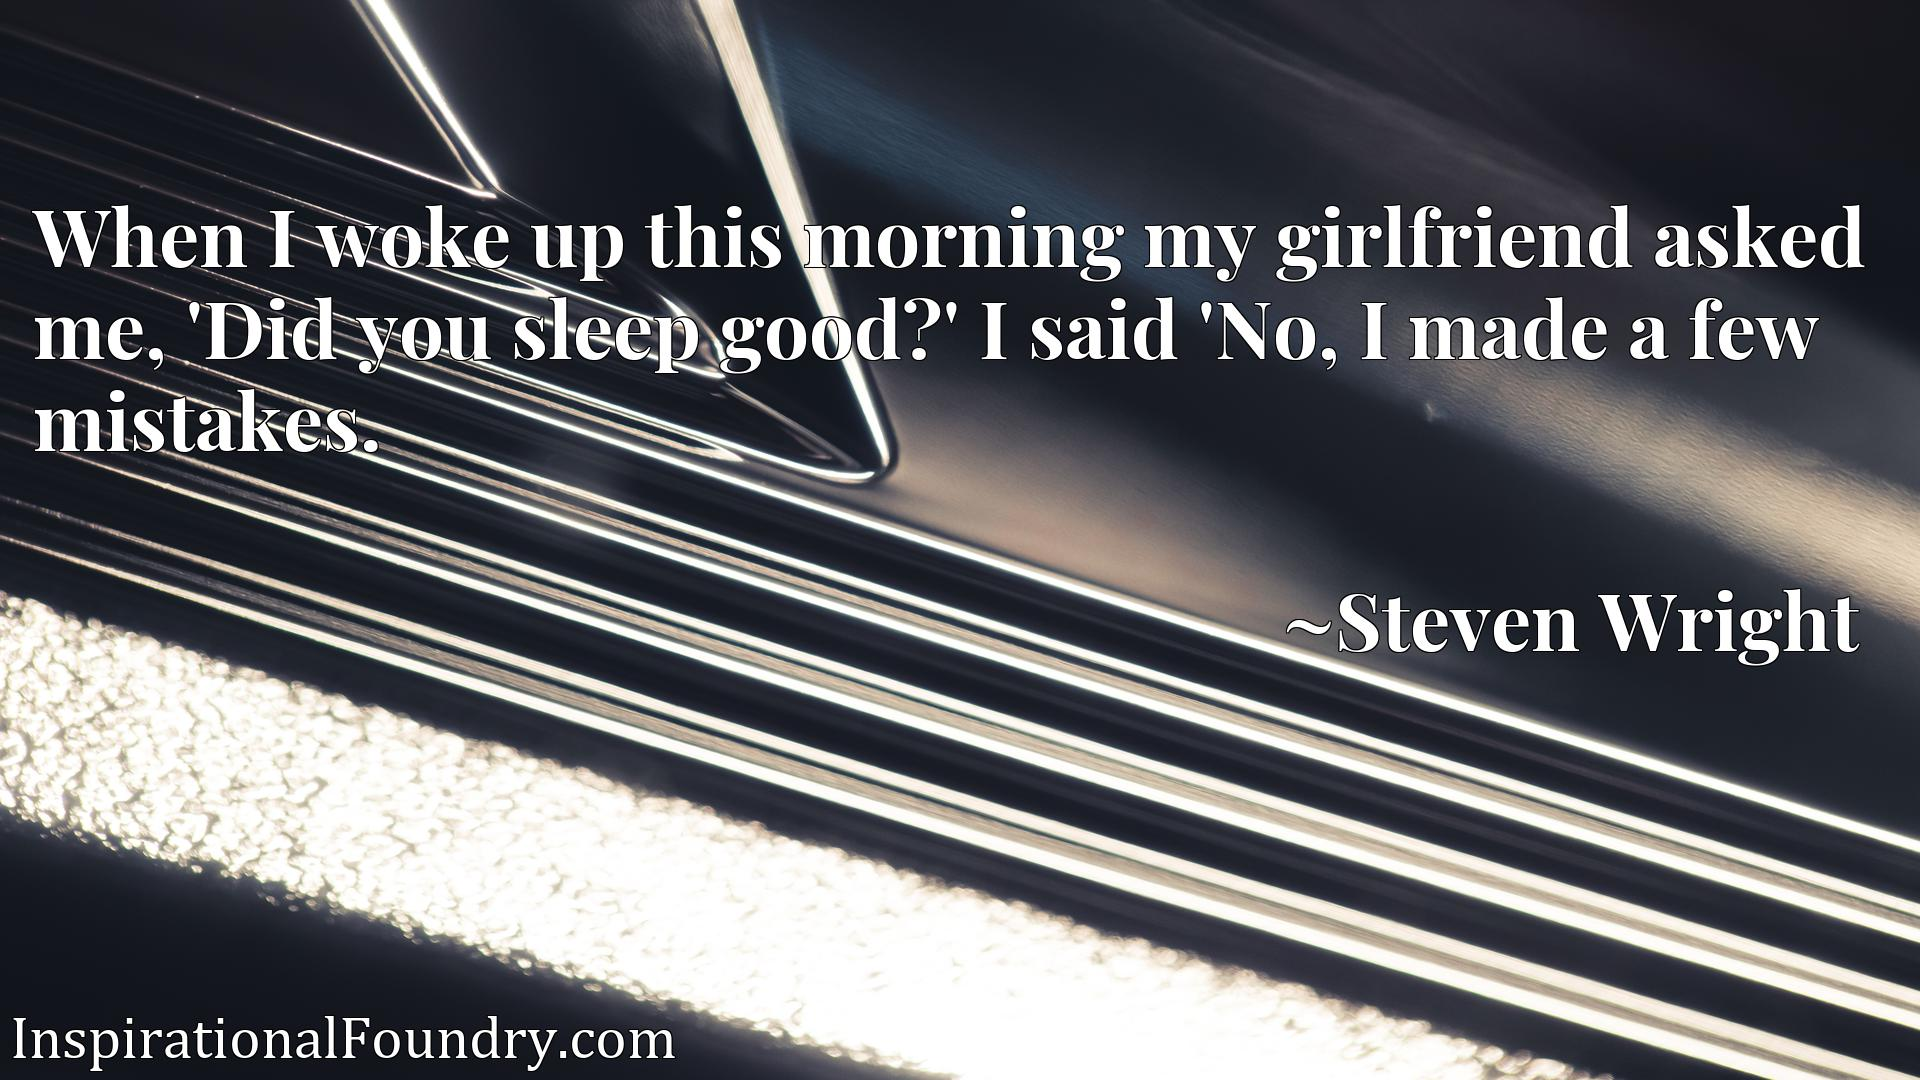 When I woke up this morning my girlfriend asked me, 'Did you sleep good?' I said 'No, I made a few mistakes.